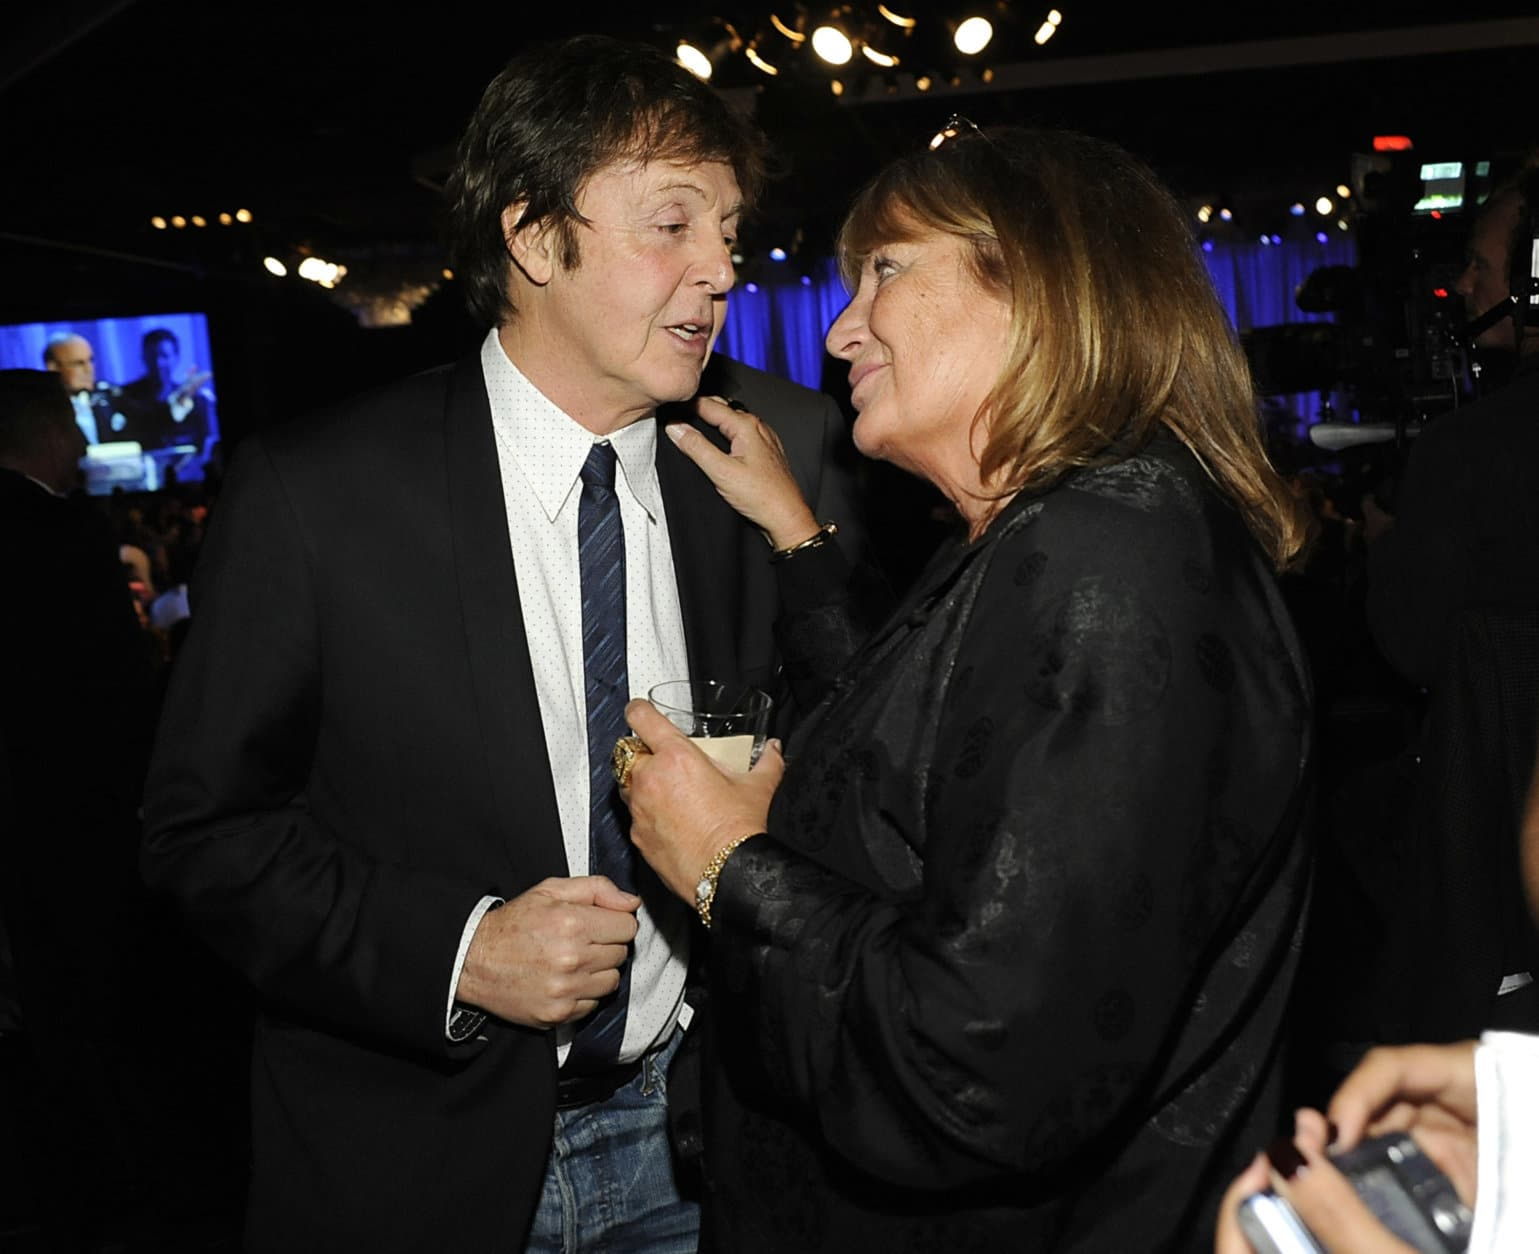 Singer and musician Paul McCartney, left, and director Penny Marshall talk at the Clive Davis pre-Grammy party in Beverly Hills, Calif. on Saturday, Feb. 7, 2009. (AP Photo/Dan Steinberg)